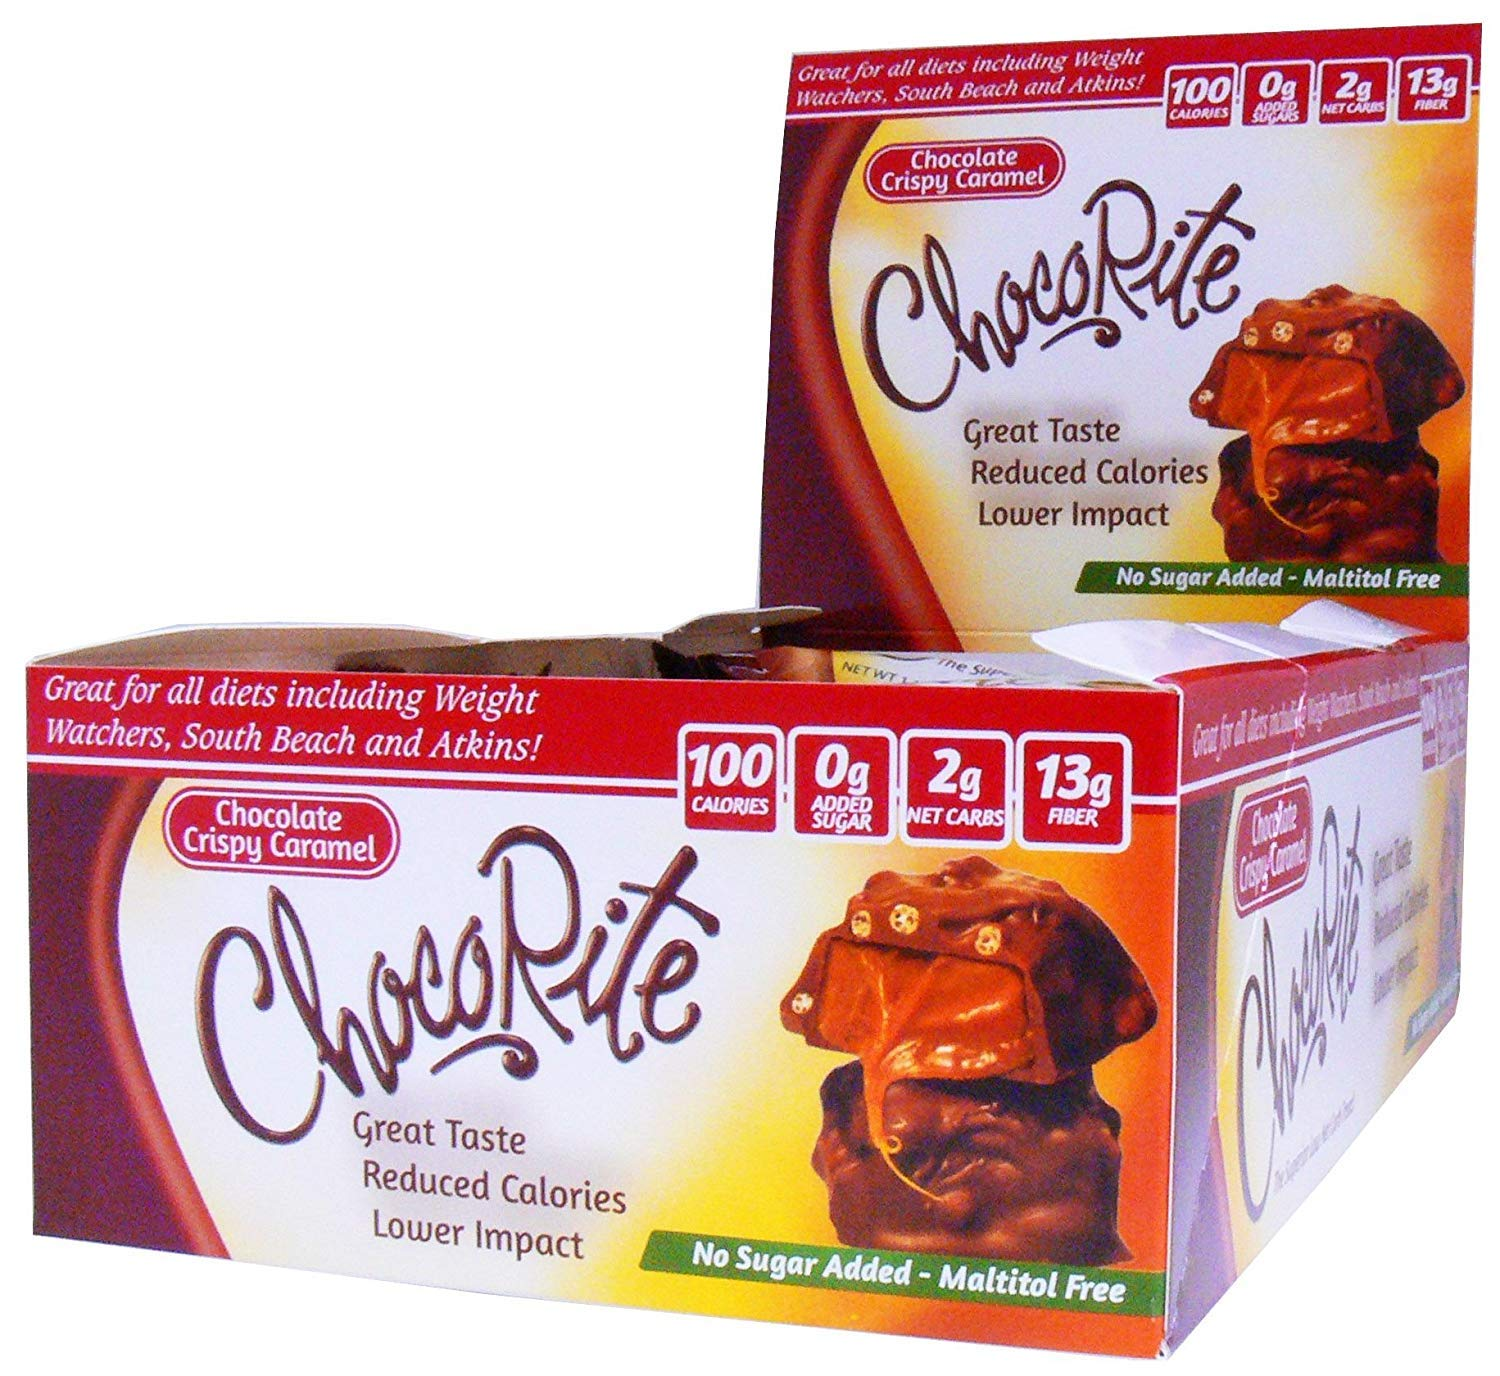 ChocoRite Crispy Caramel, Crispy Caramel, 18 Ounce (4 Pack) by ChocoRite